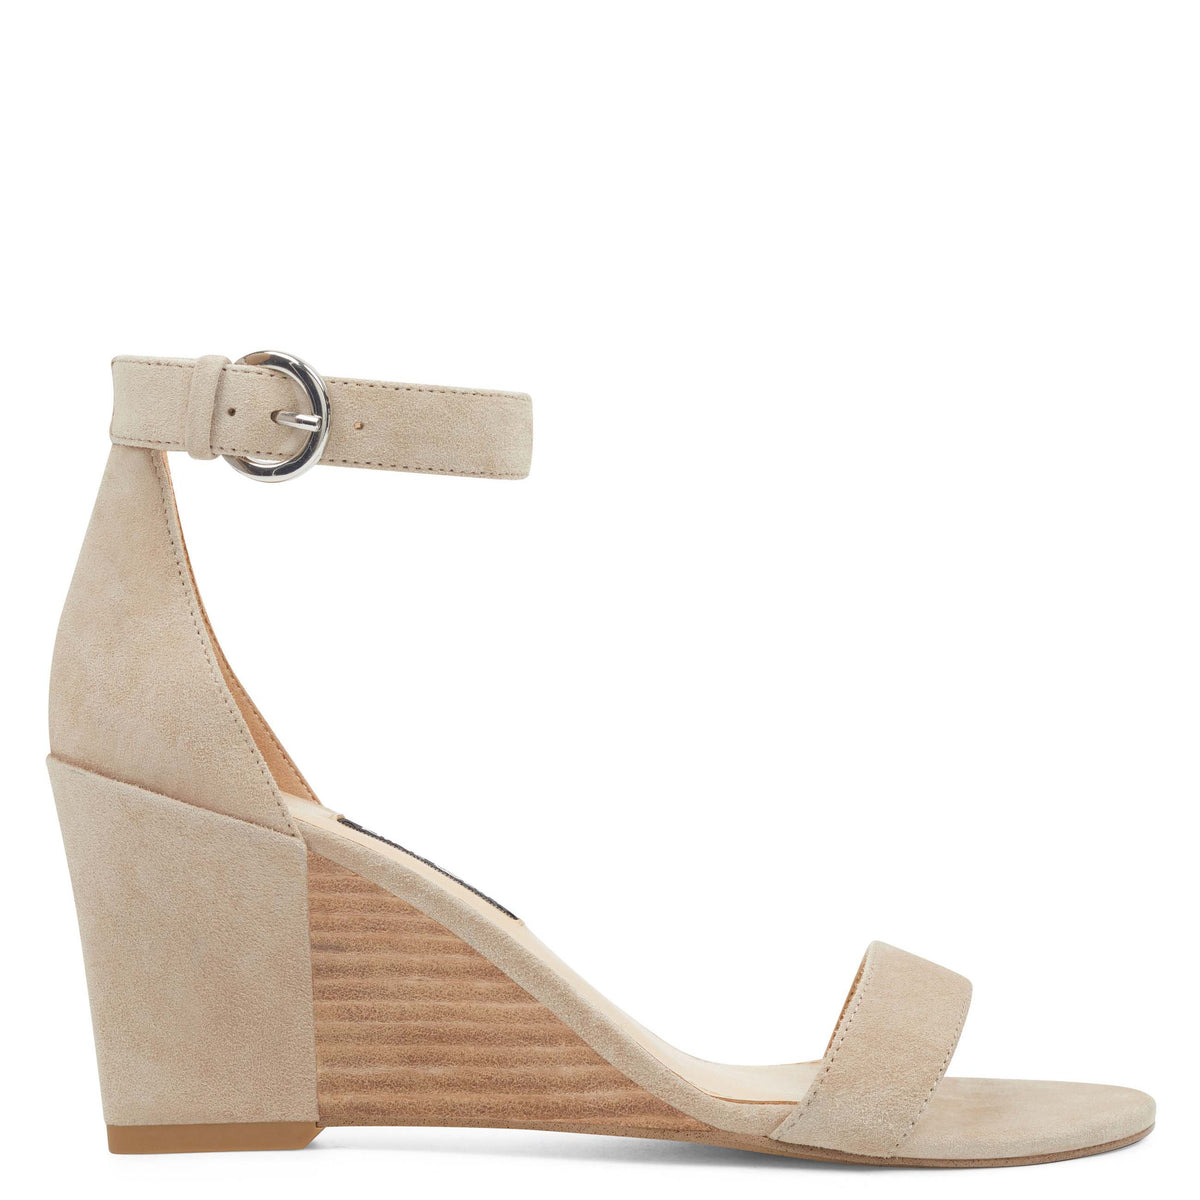 Sloane Wedge Sandals